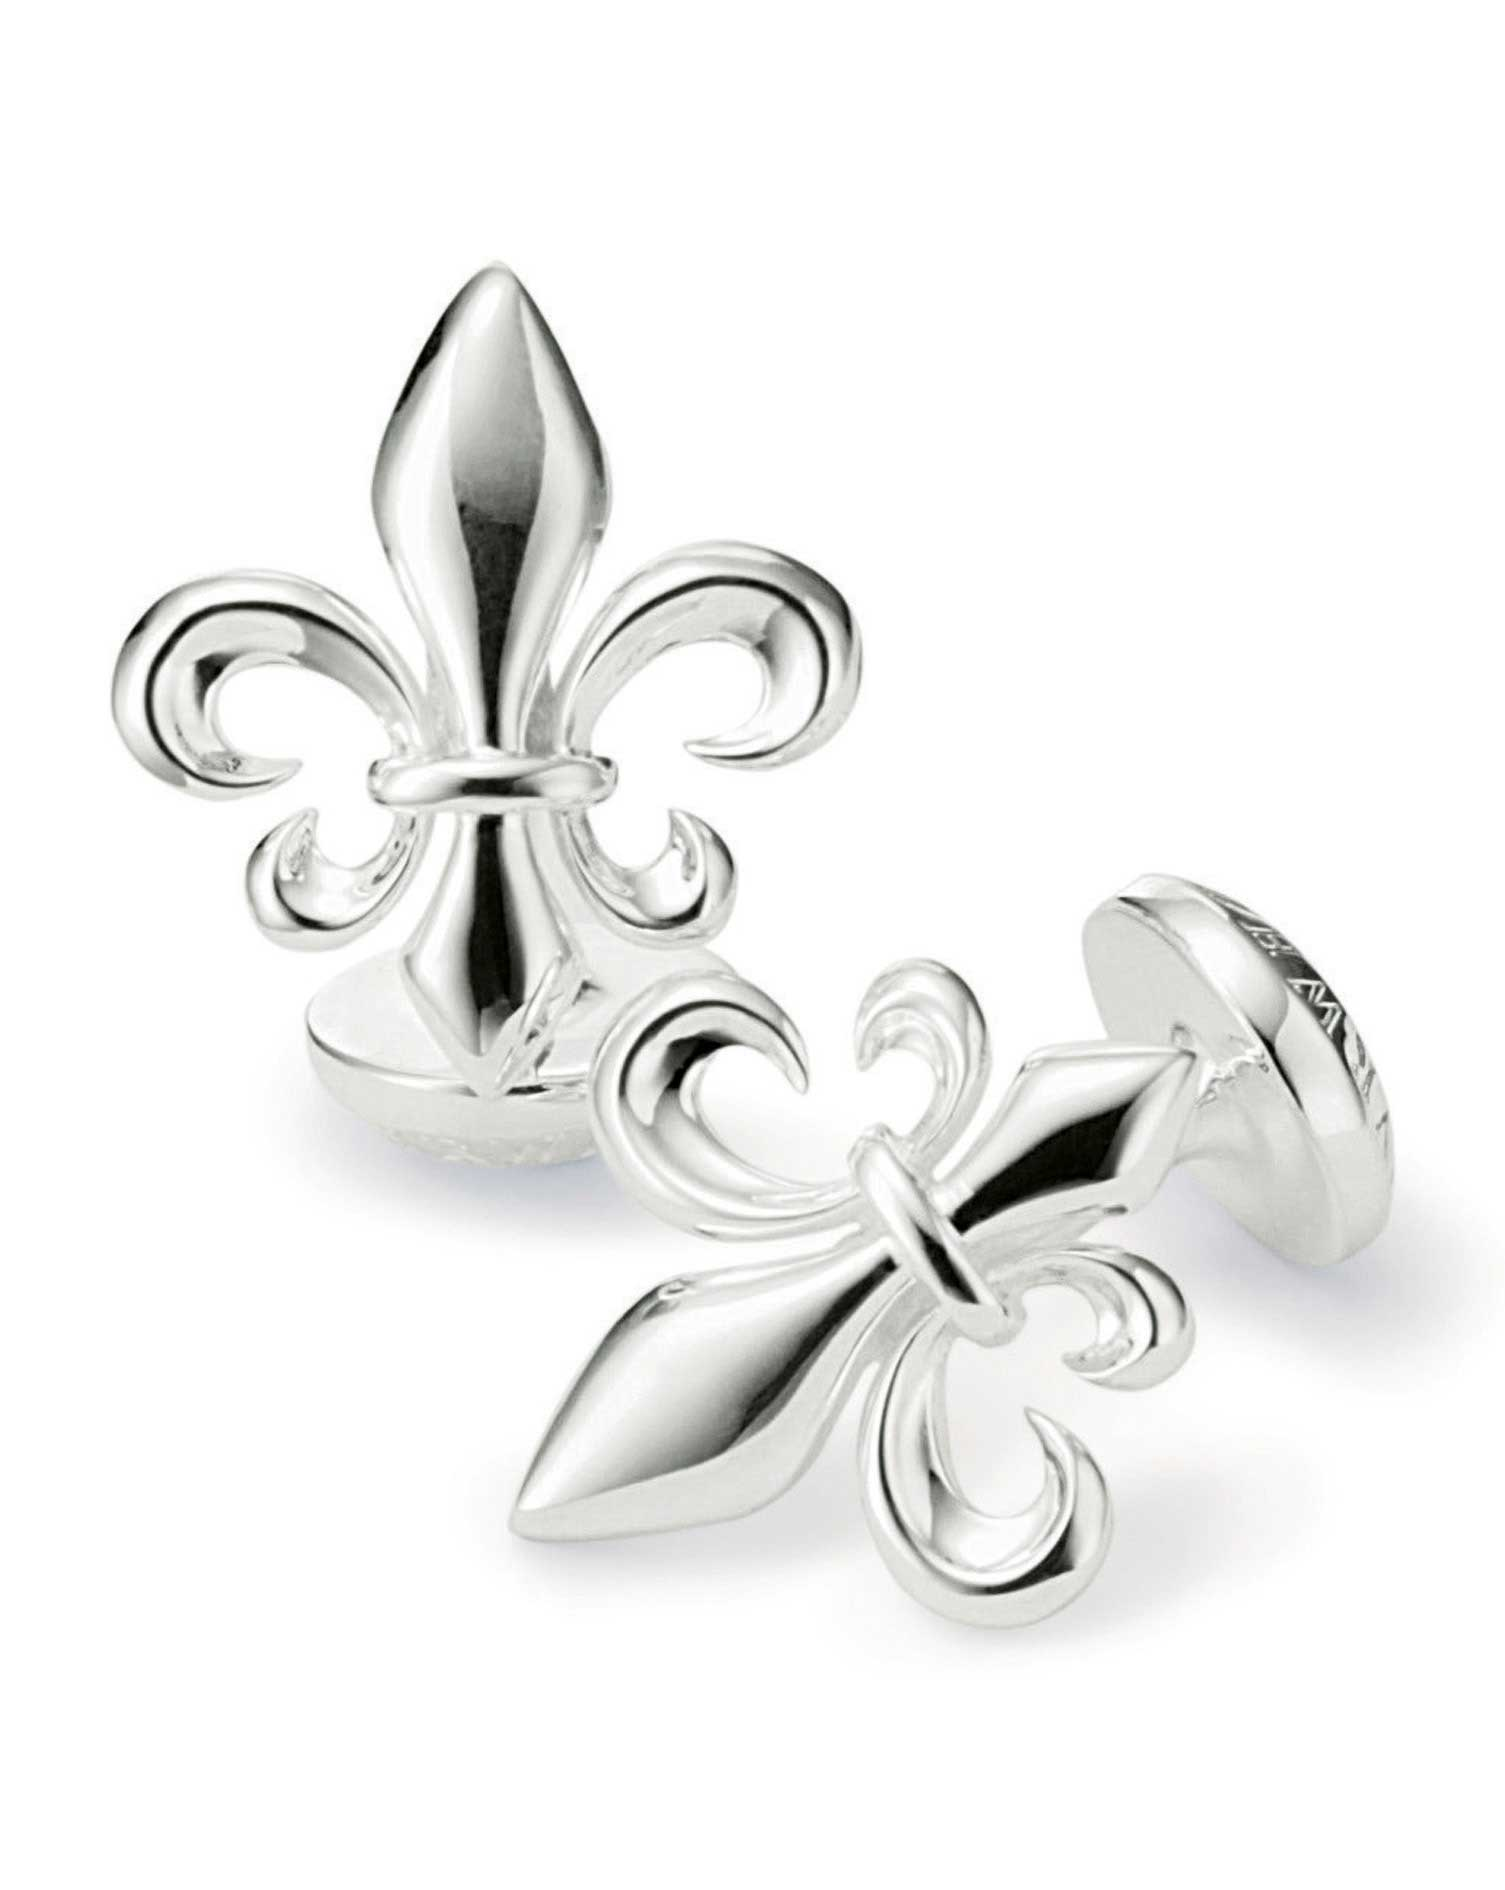 fleur de lys silver plated cufflinks charles tyrwhitt. Black Bedroom Furniture Sets. Home Design Ideas